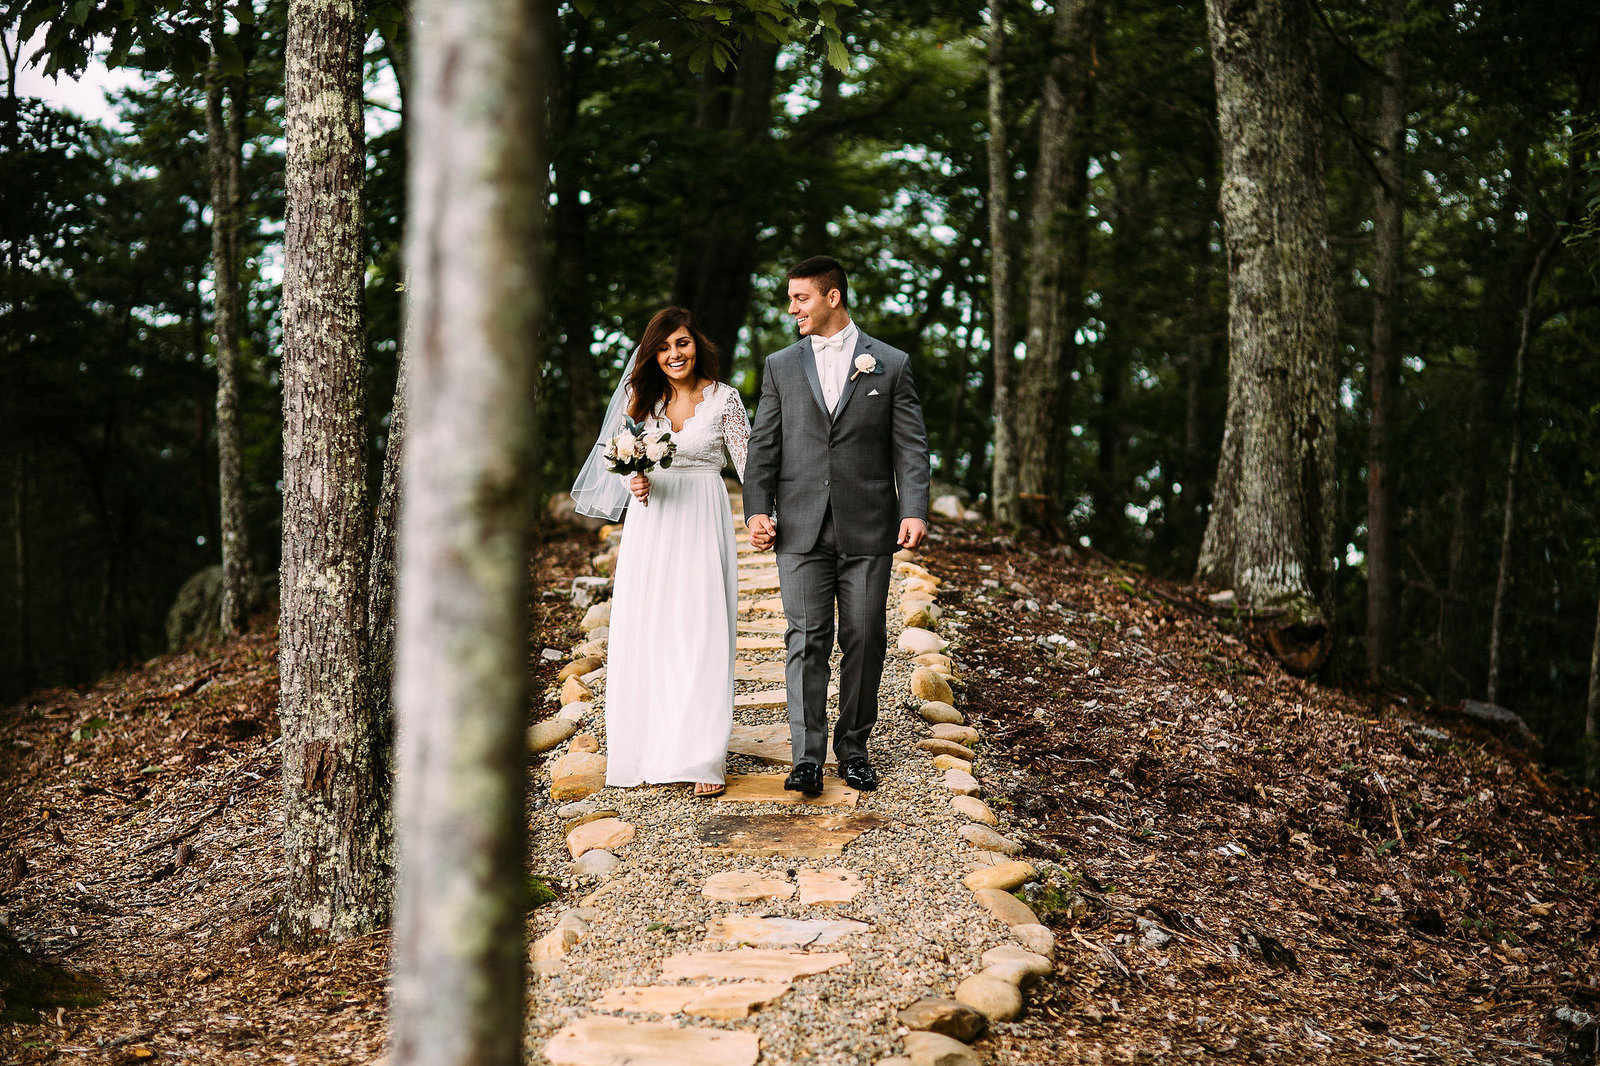 SaraLane-Stevie-Wedding-Elopement-Mountain-Photography-Graciela-Austin-LR-21PS-small